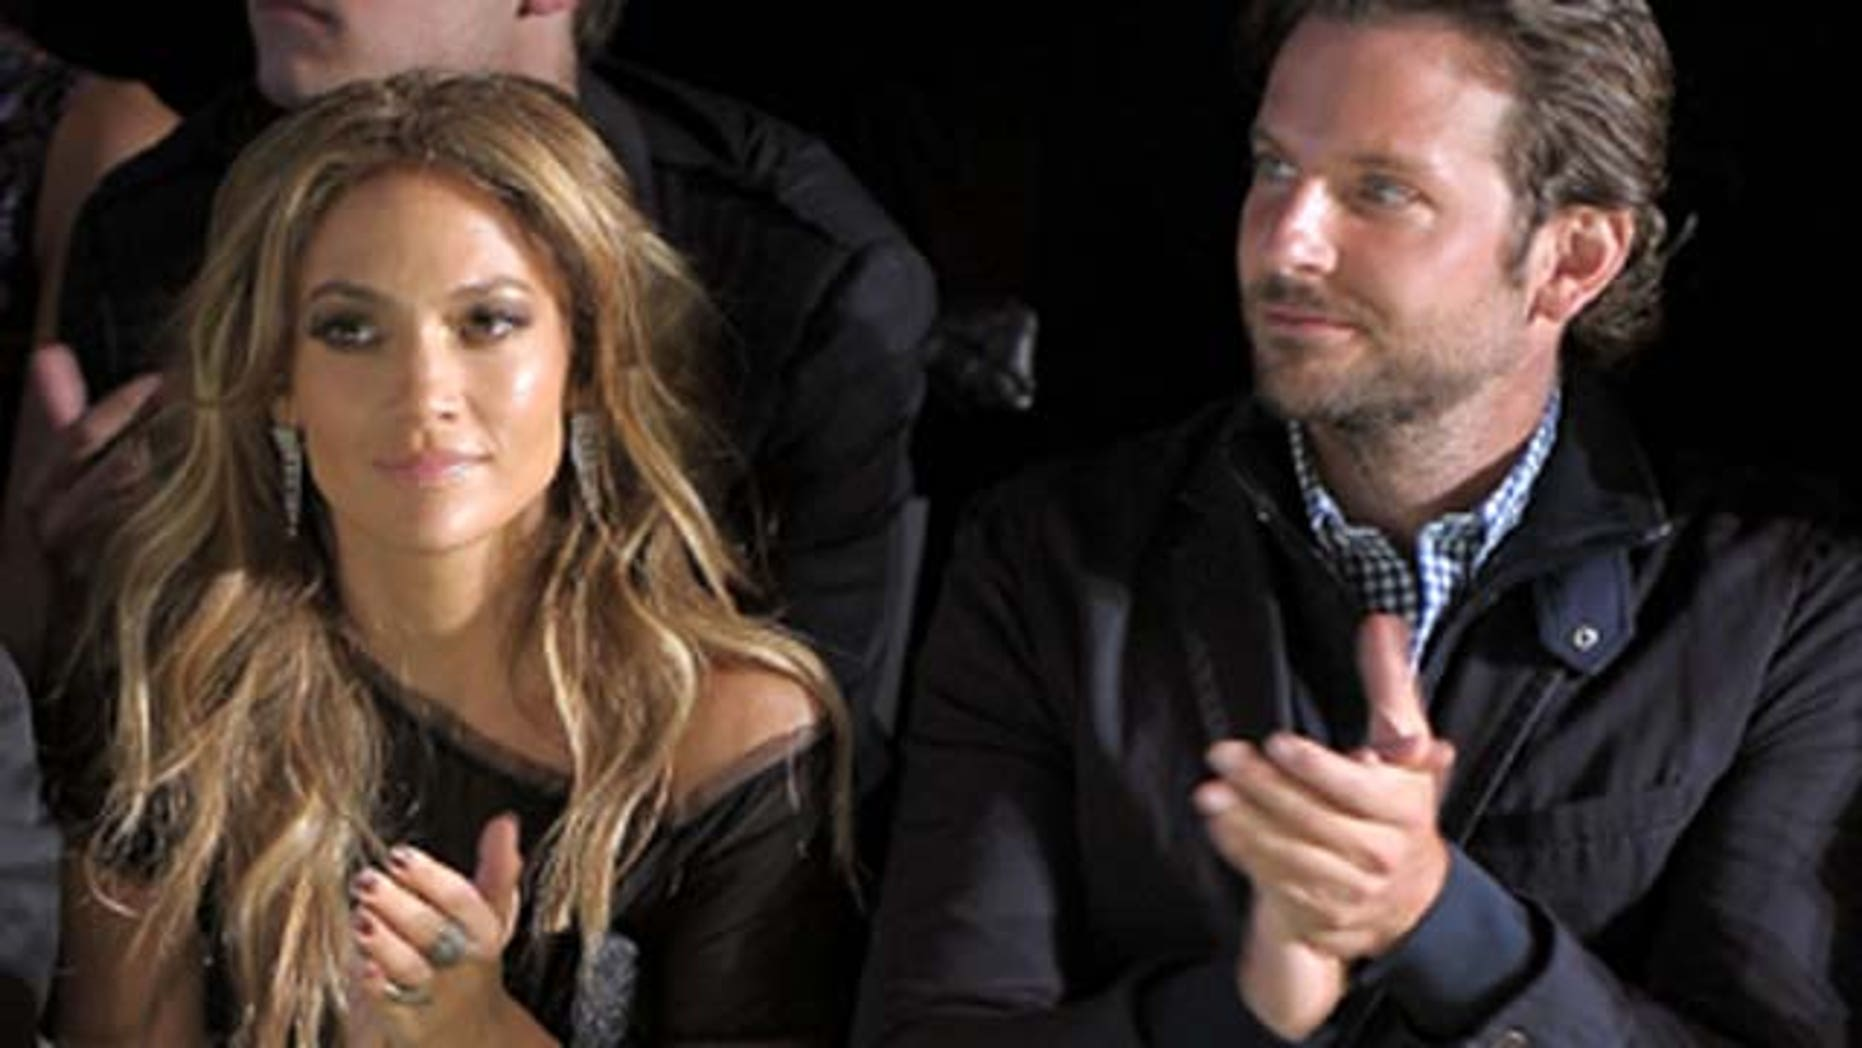 Sept. 12, 2010: Singer/actress Jennifer Lopez and actor Bradley Cooper attend the Tommy Hilfiger Spring 2011 fashion show during Mercedes-Benz Fashion Week at The Theater at Lincoln Center  in New York City.